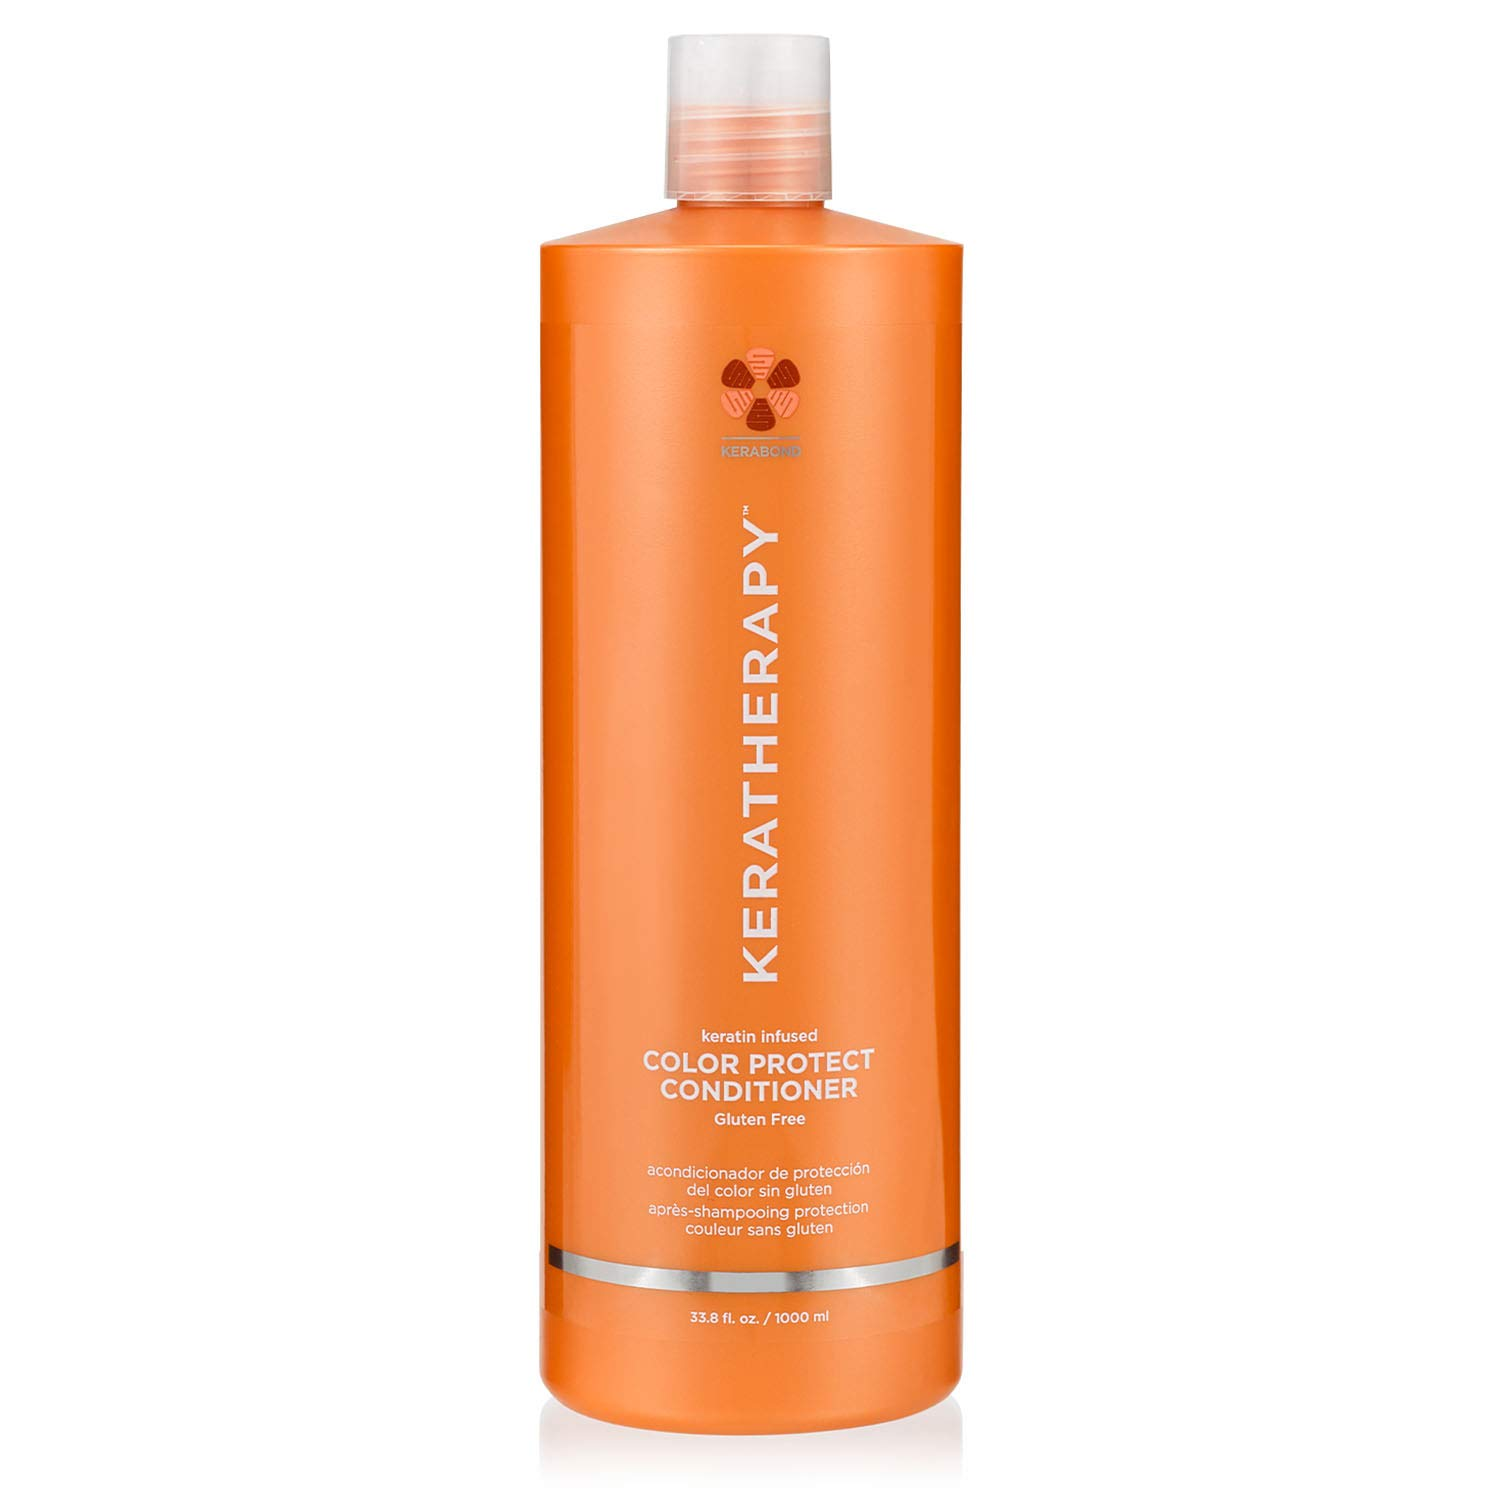 Keratherapy Keratin Infused Color Protect Conditioner, 33.8 fl. oz., 1000 mL